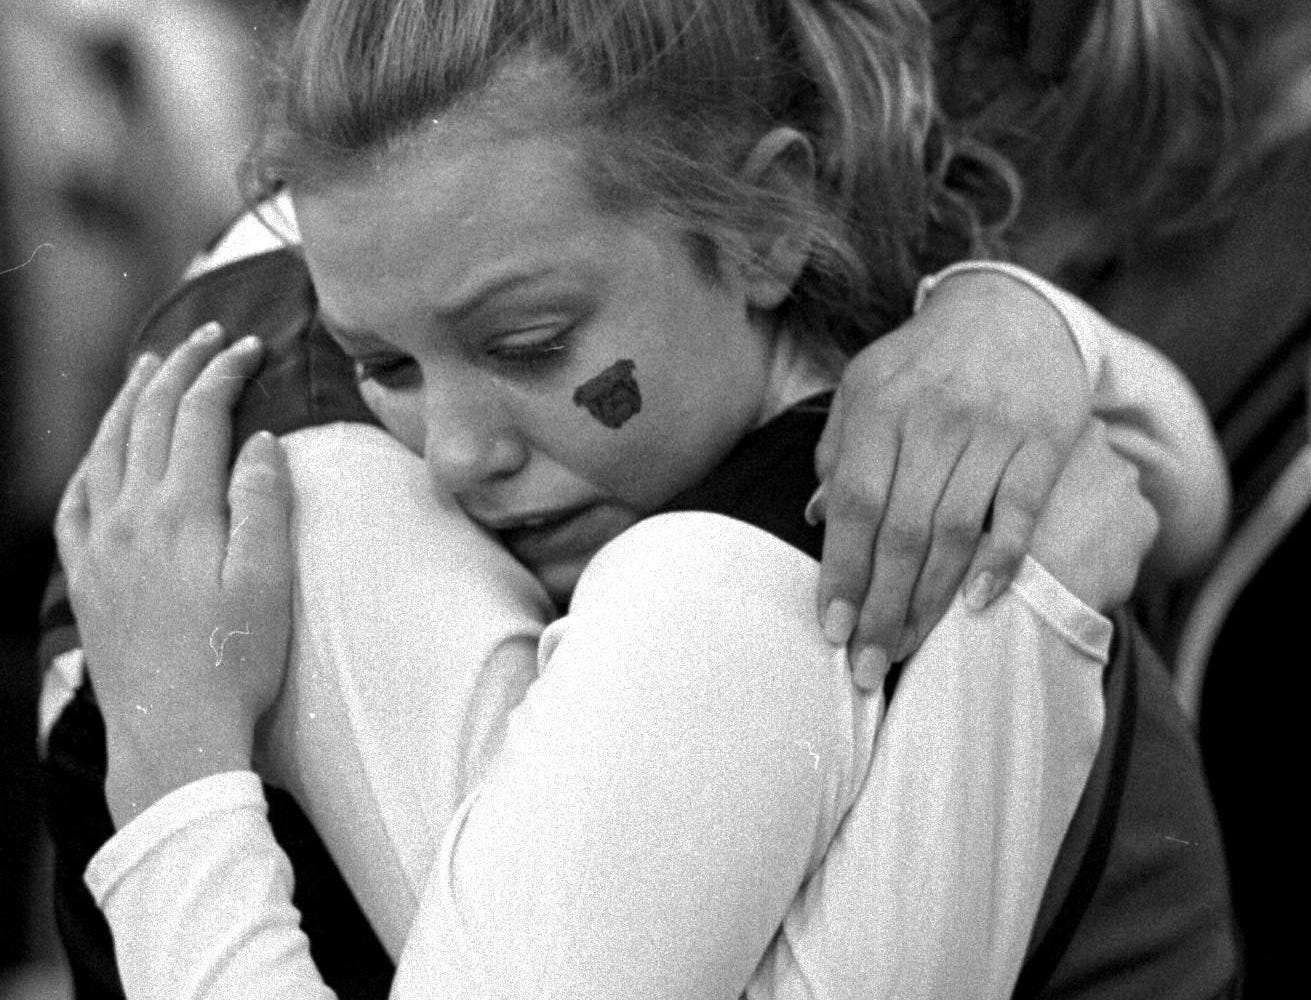 Cheerleaders Brooklyn Farris, facing, and Ruthie LaDuke comforted each other after the Bulldogs lost on a last-second three-pointer. Below, Leslie Sauer and Bobby Cunningham yelled during the game.March 24,1996.